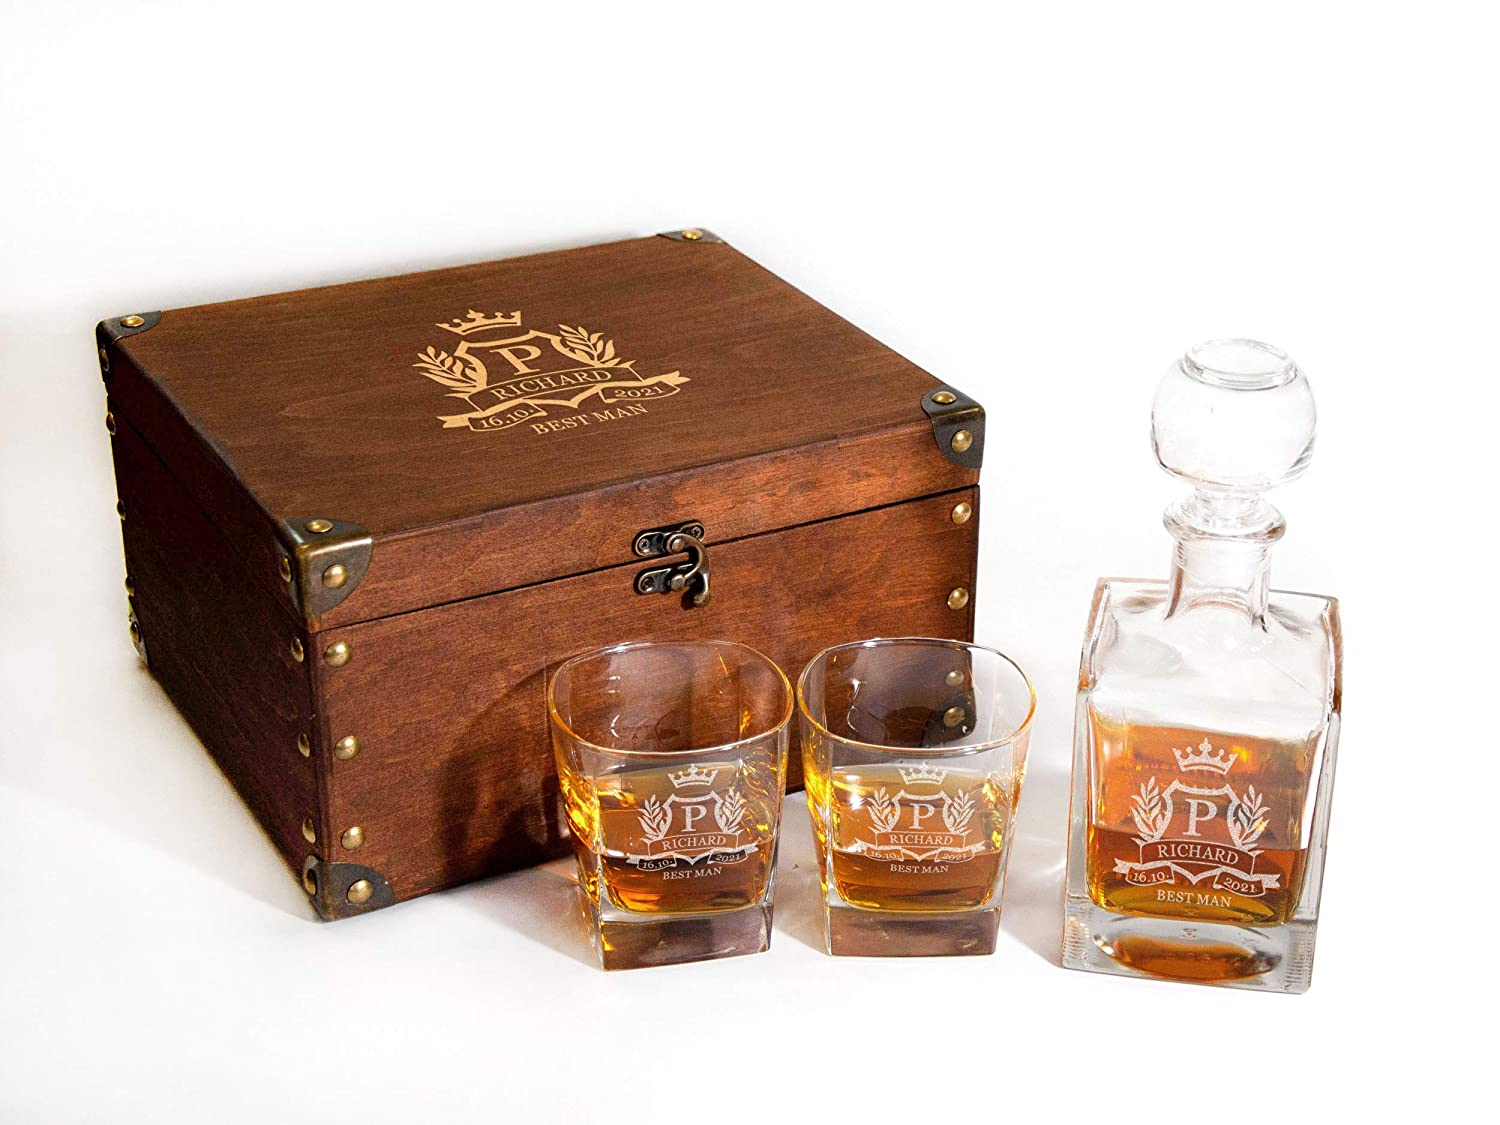 Personalized Whiskey Decanter ブランド品 Glasses Set with Whiske Box 新発売 Wood